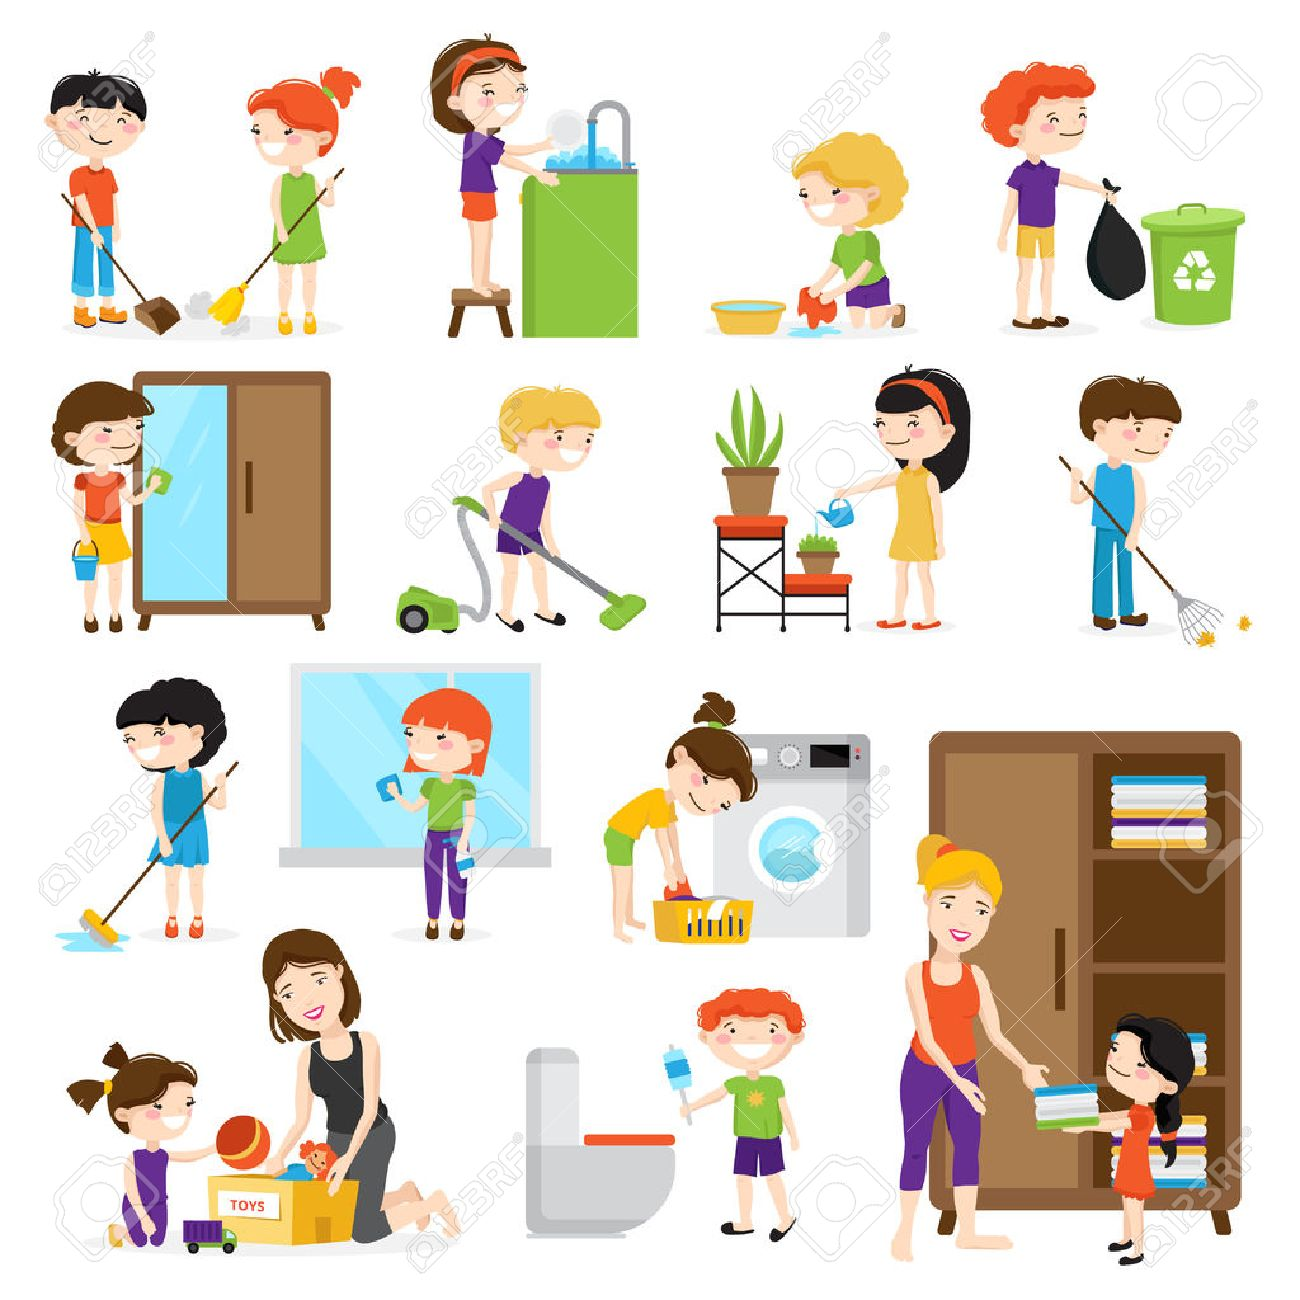 Colorful cartoon set with kids cleaning rooms and helping their mums isolated on white background vector illustration Stock Vector - 68241082